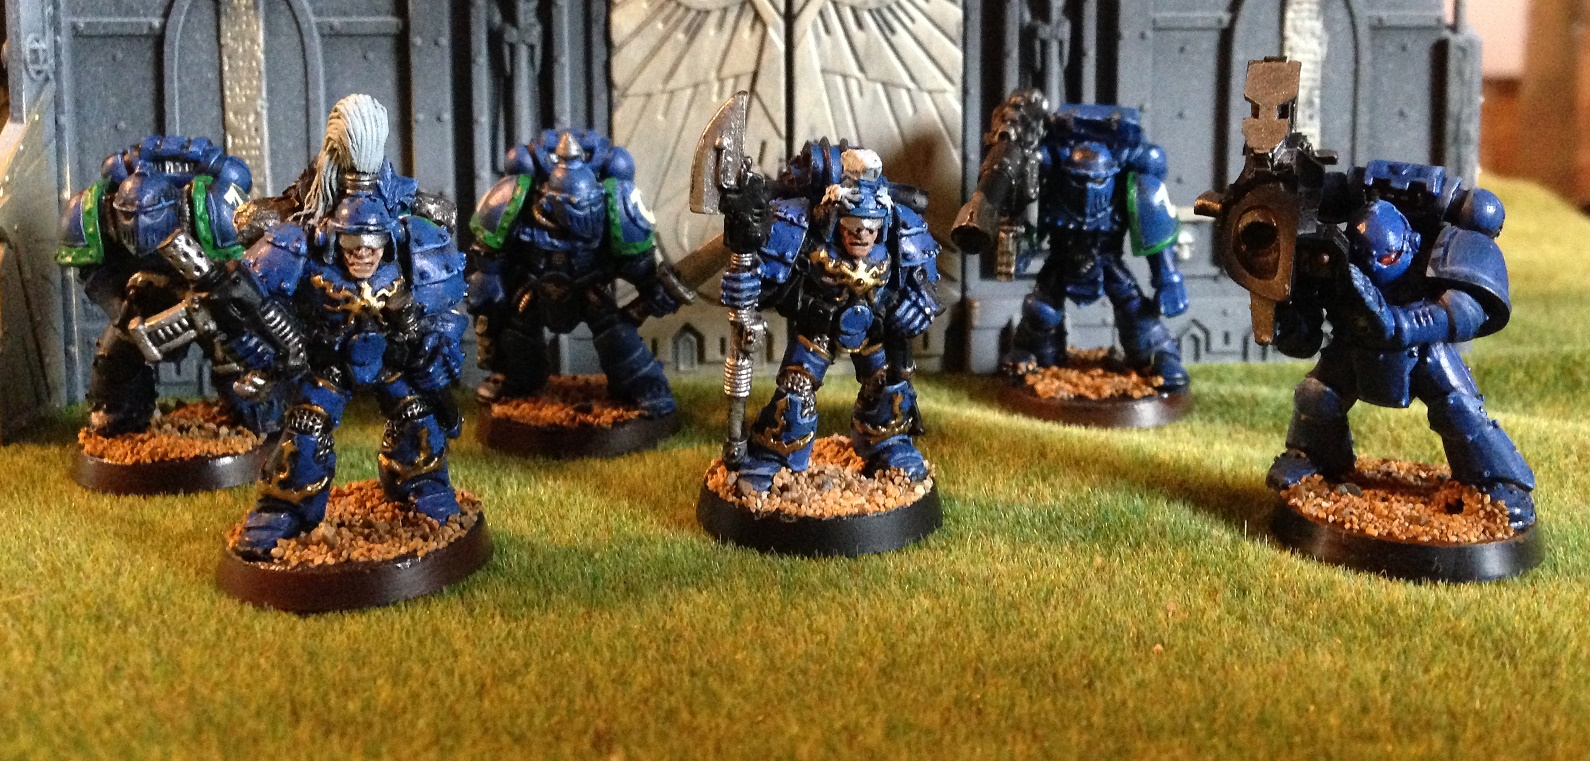 mki mkii and mkiii space marines